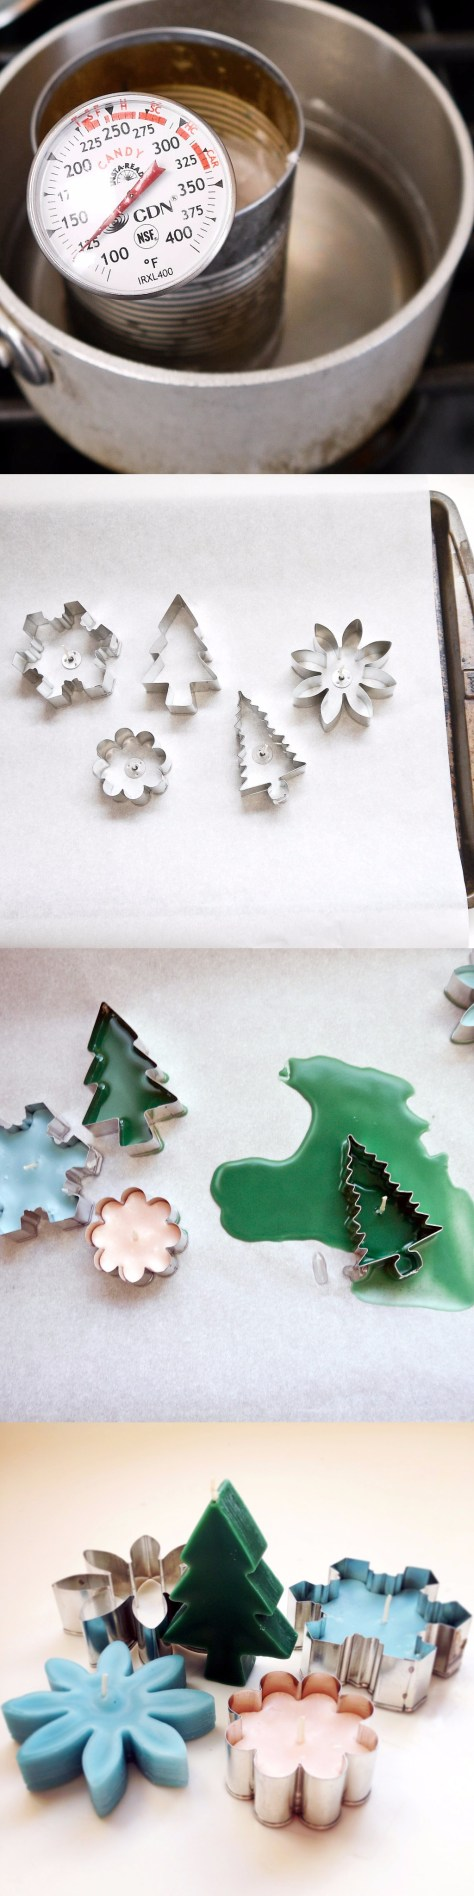 DIY Cookie Cutter Candles